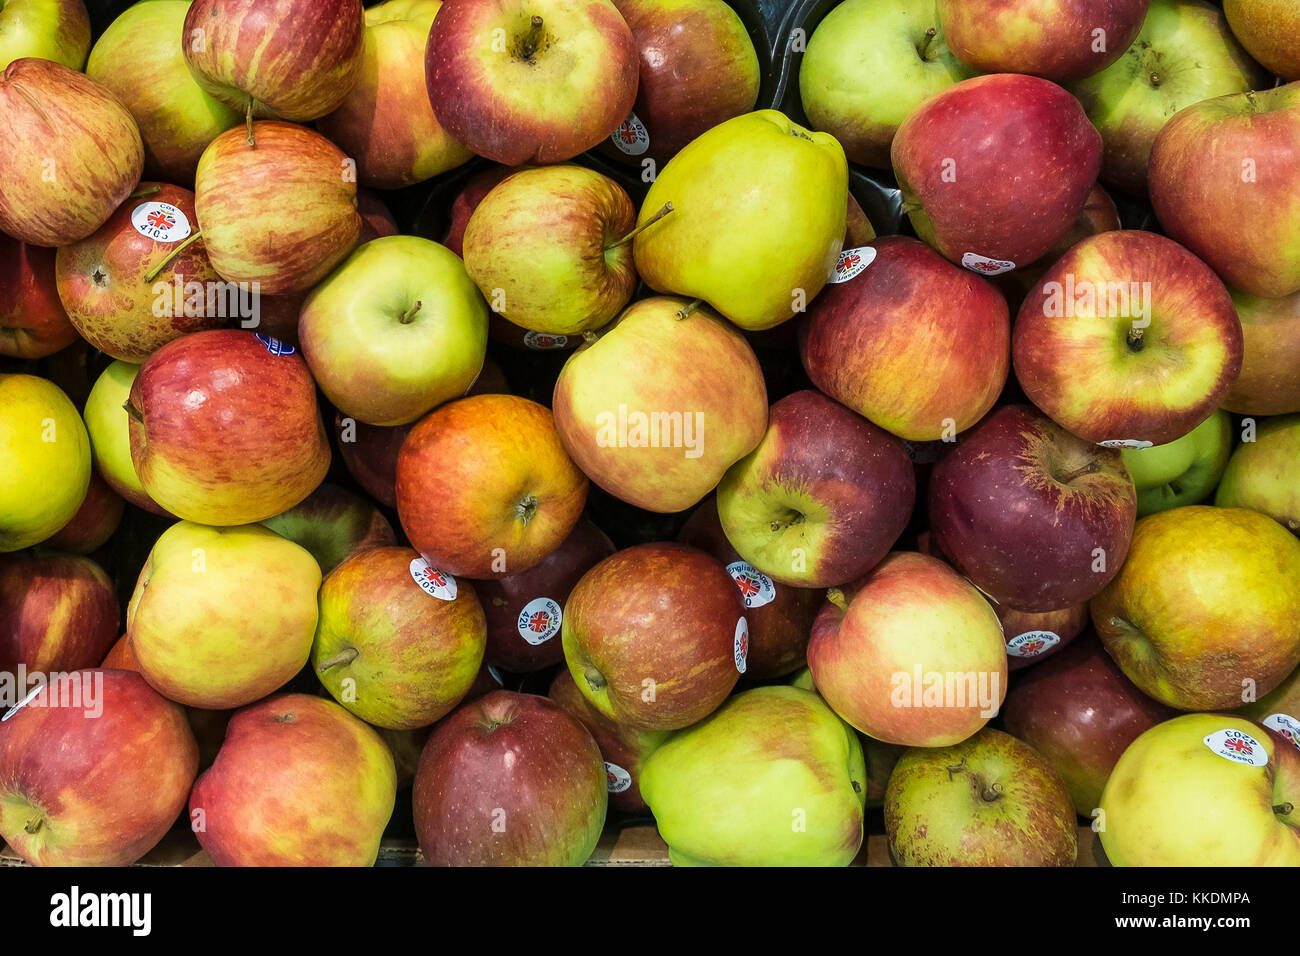 Assorted English apples on display. - Stock Image